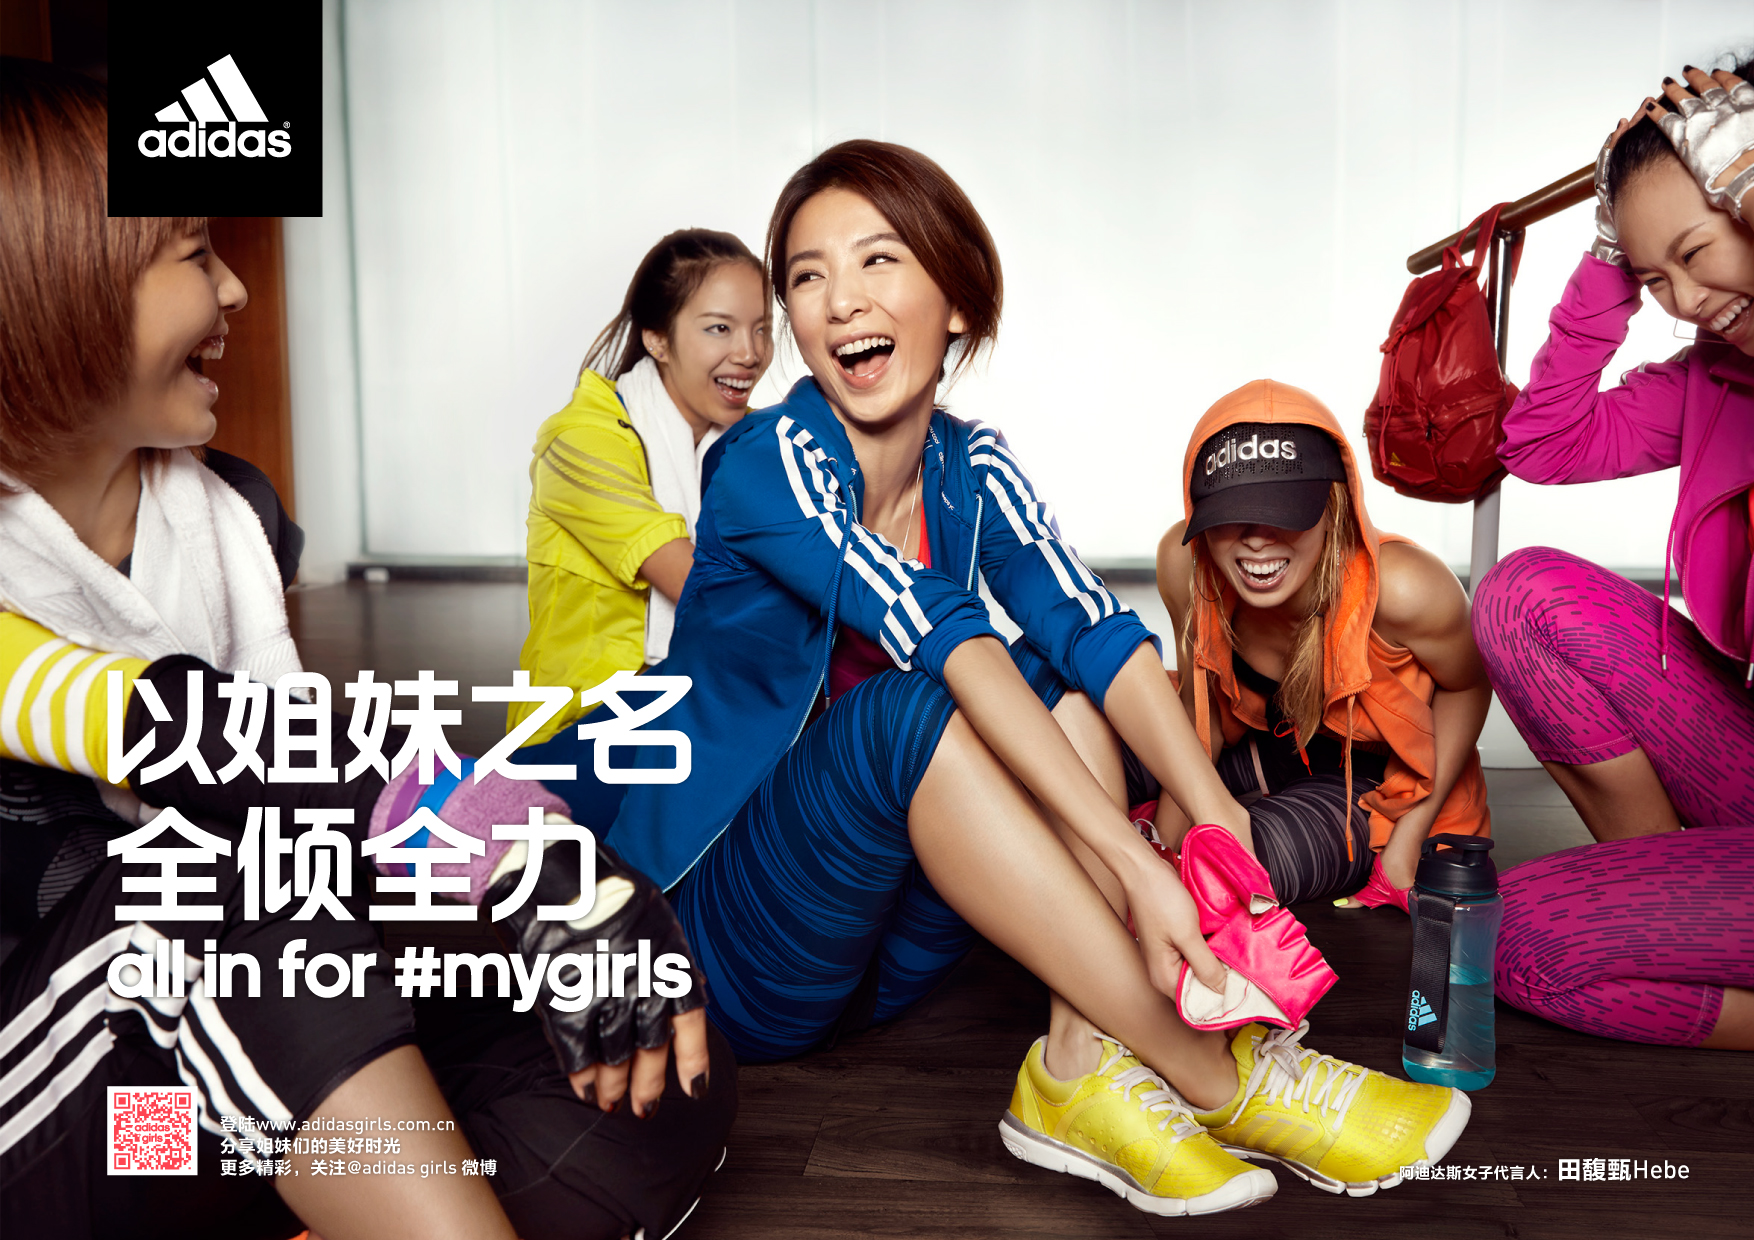 The TV commercial features the pop singer Hebe from the Taiwanese girl-band  S.H.E. as well as interviewees from the running 10dd56980